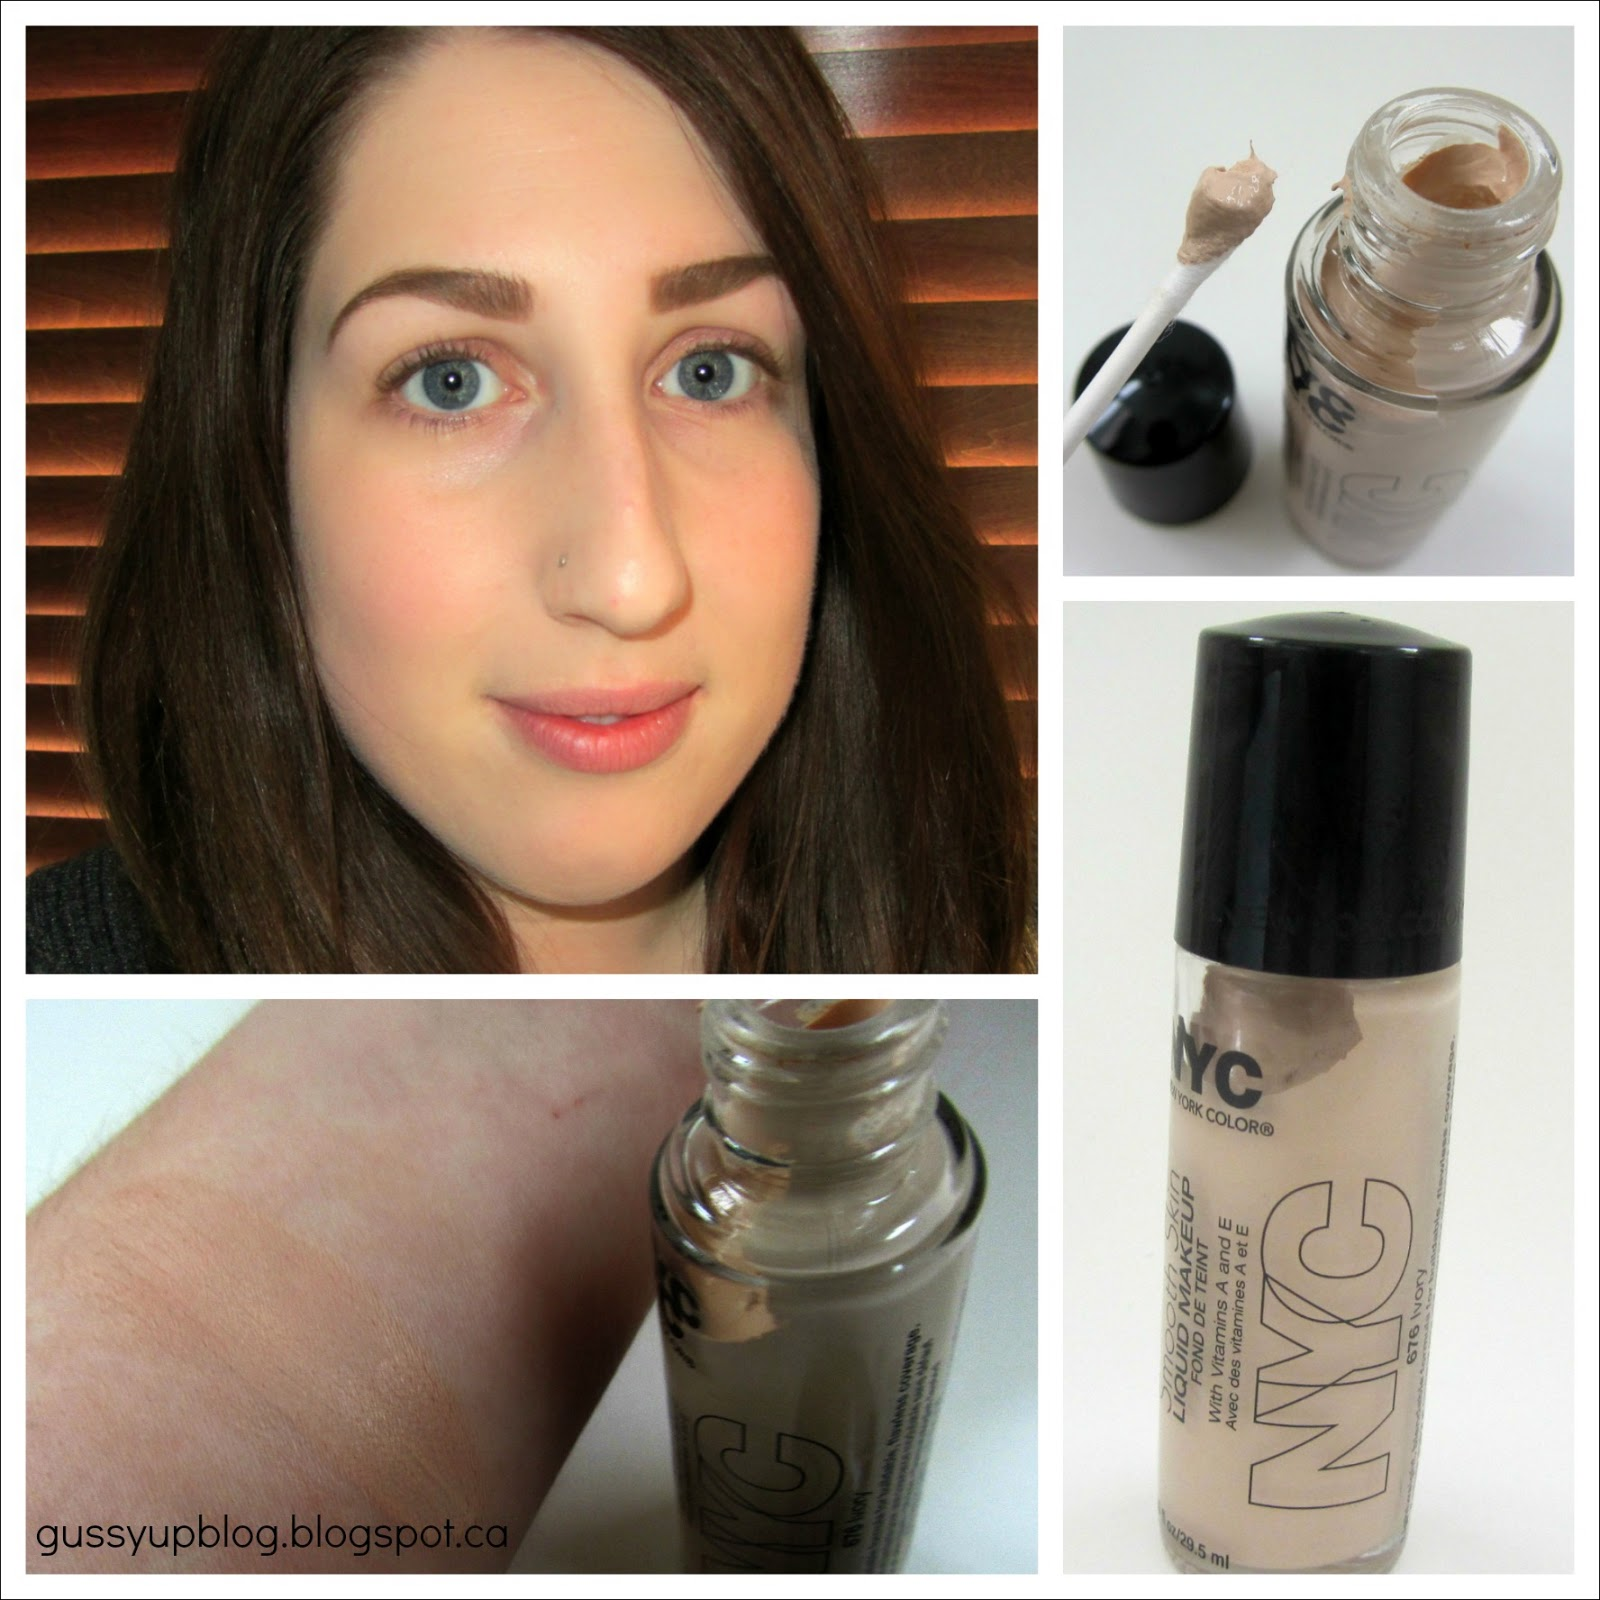 NYC Smooth Skin Liquid Makeup, No. 676 Ivory, Review and Swatches